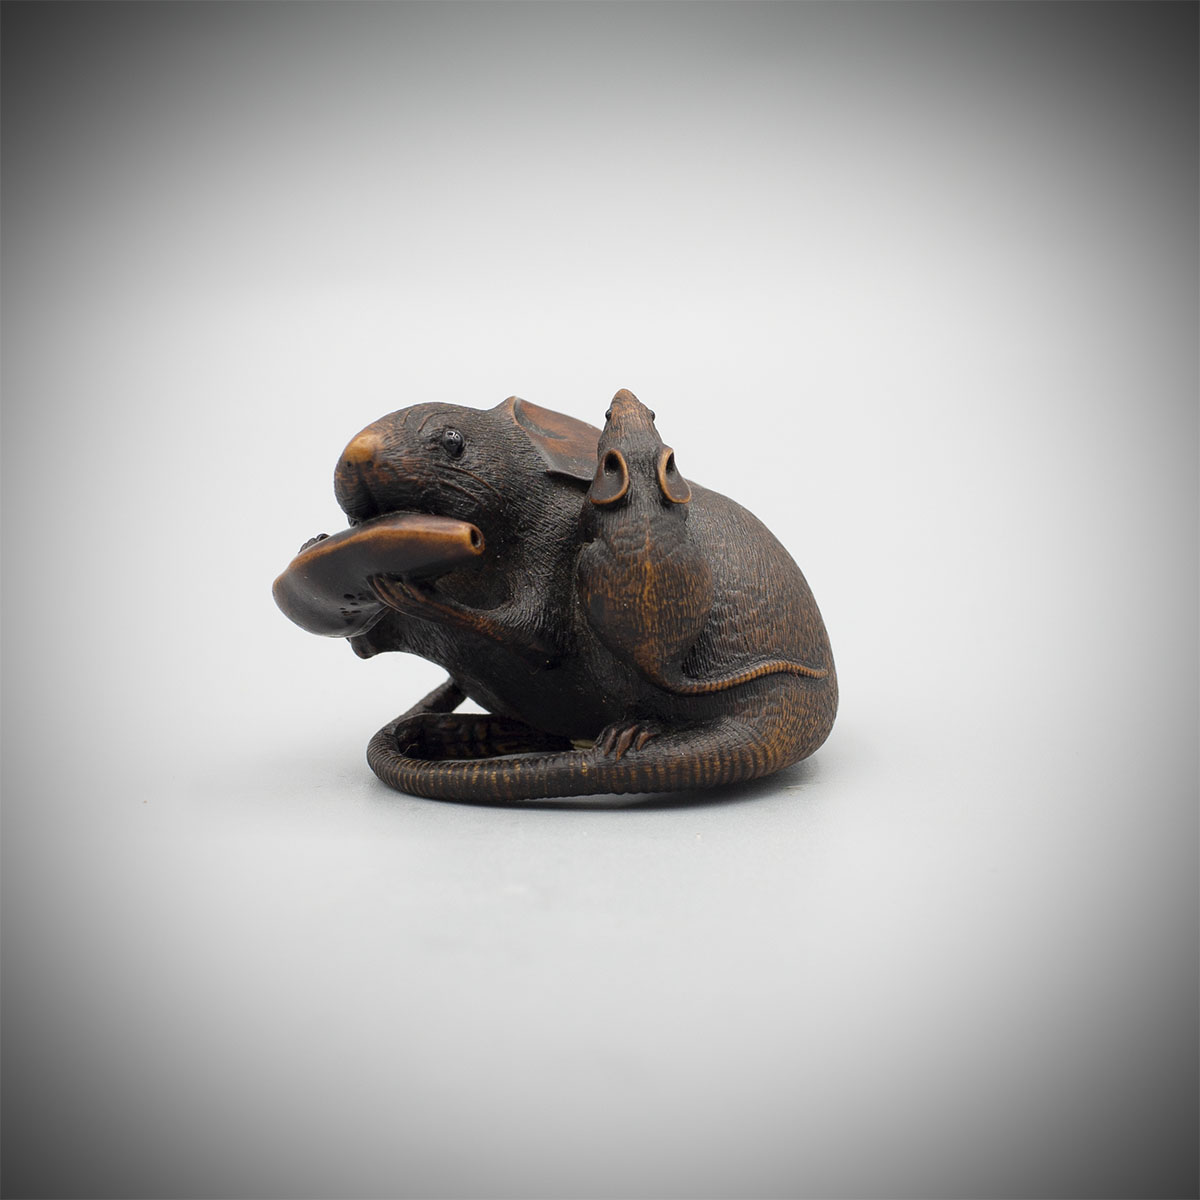 Wood okimono netsuke of rats by Hokyudo Itsumin, MR3642_v.1